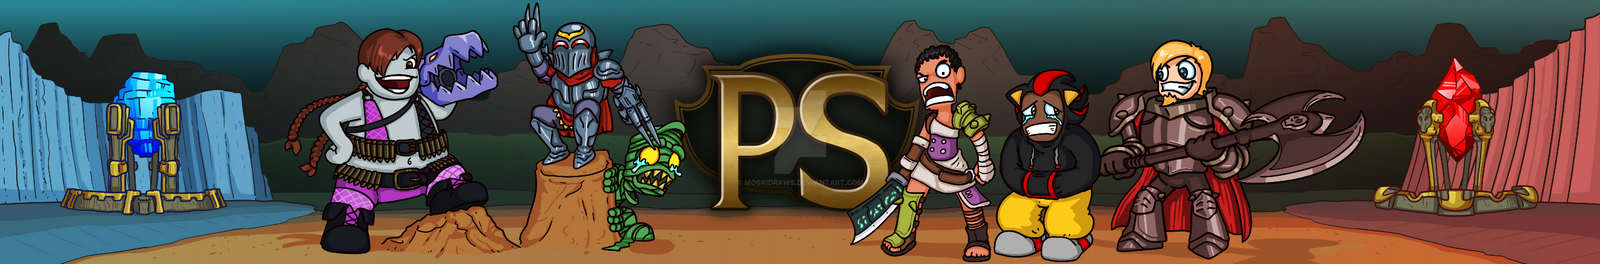 [Commission] ProfessionalScrubs banner by Memoski